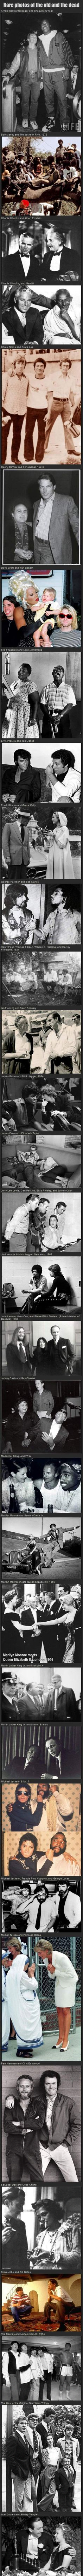 Old and rare photos of celebrities hanging out together